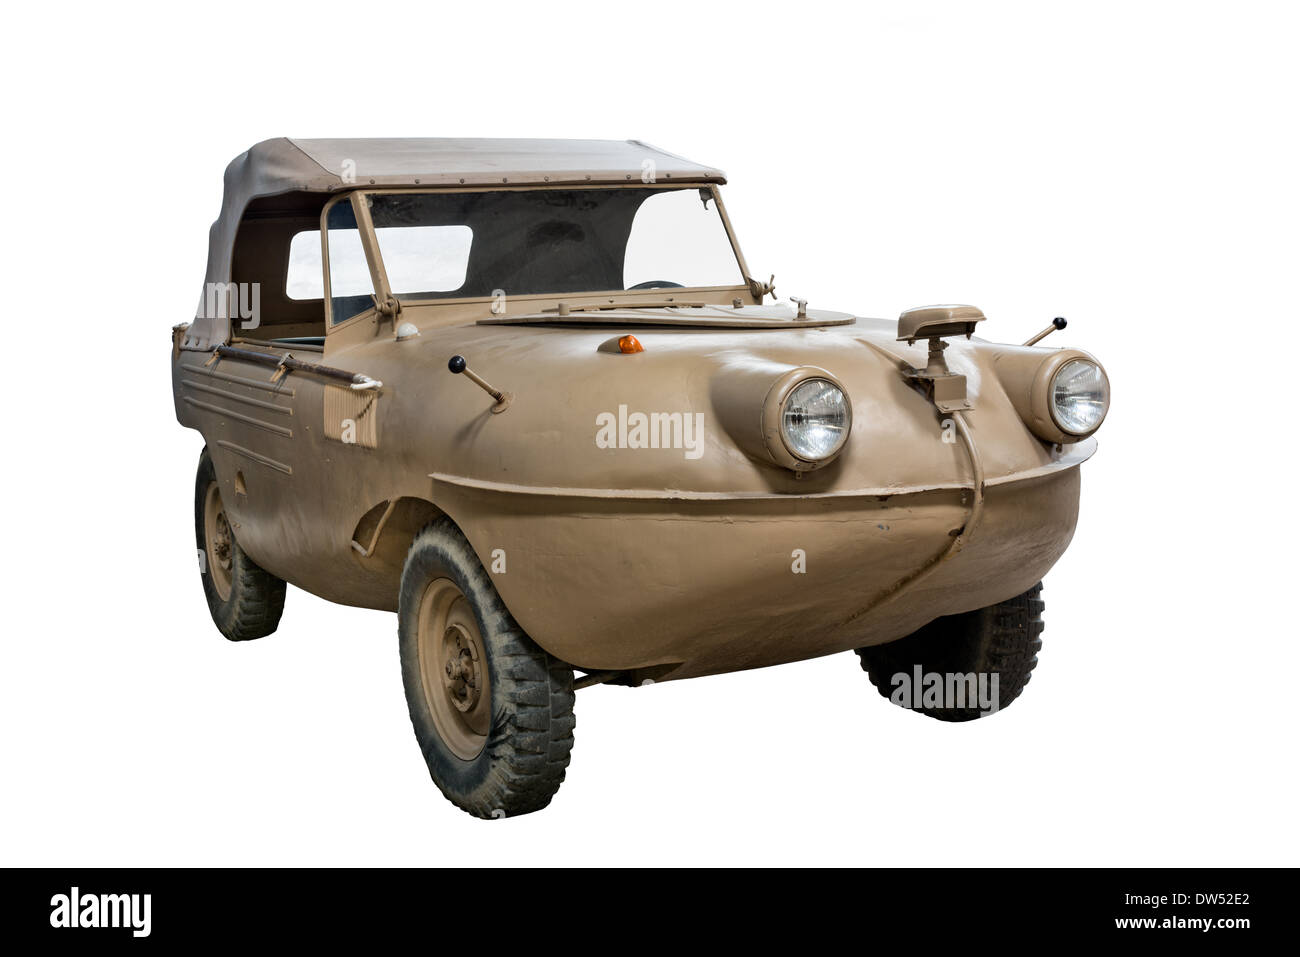 A cut out of an SG6 41 Trippelwagen amphibious car ordered an used by the SS & Nazi German forces during WW2 - Stock Image